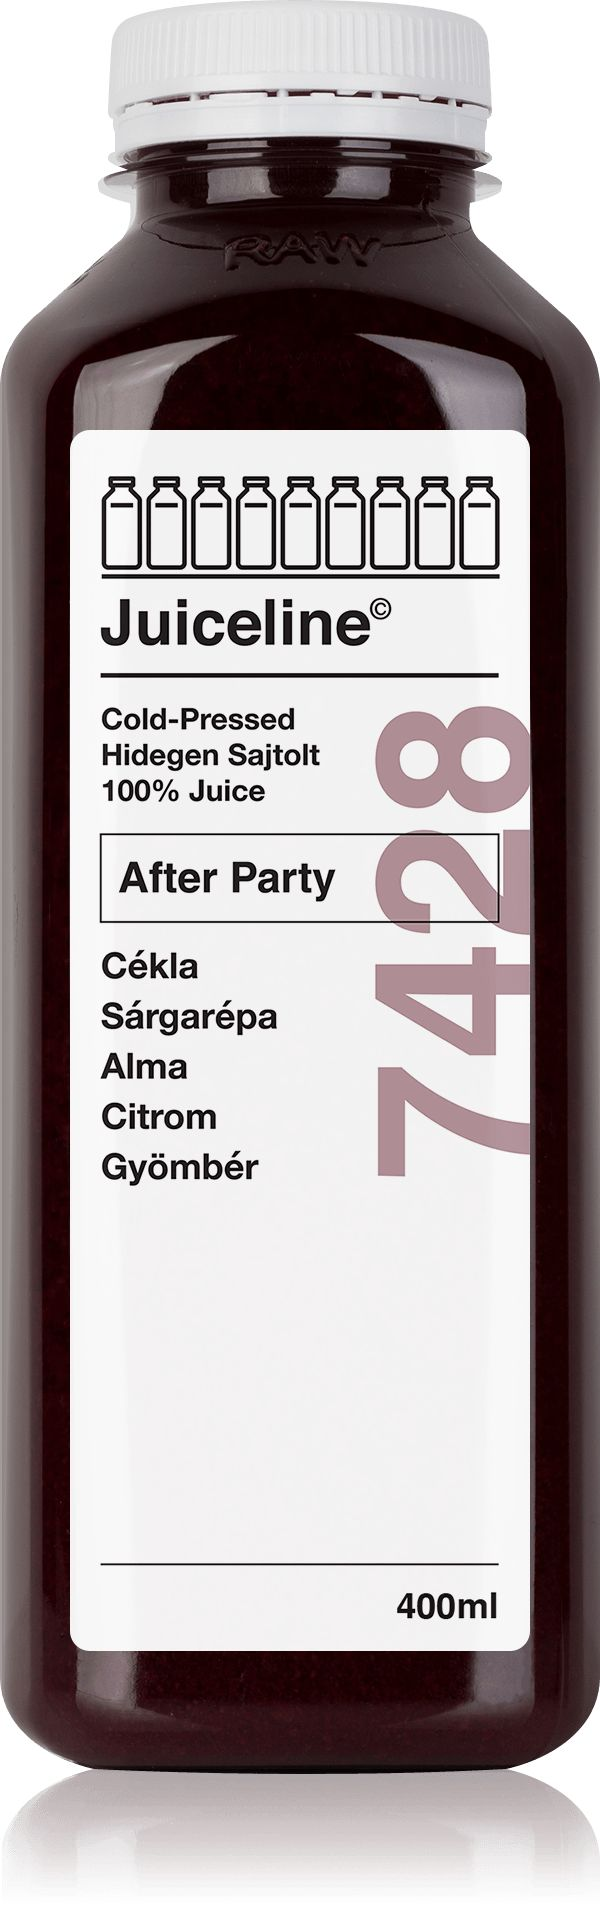 7428 After Party 400ml